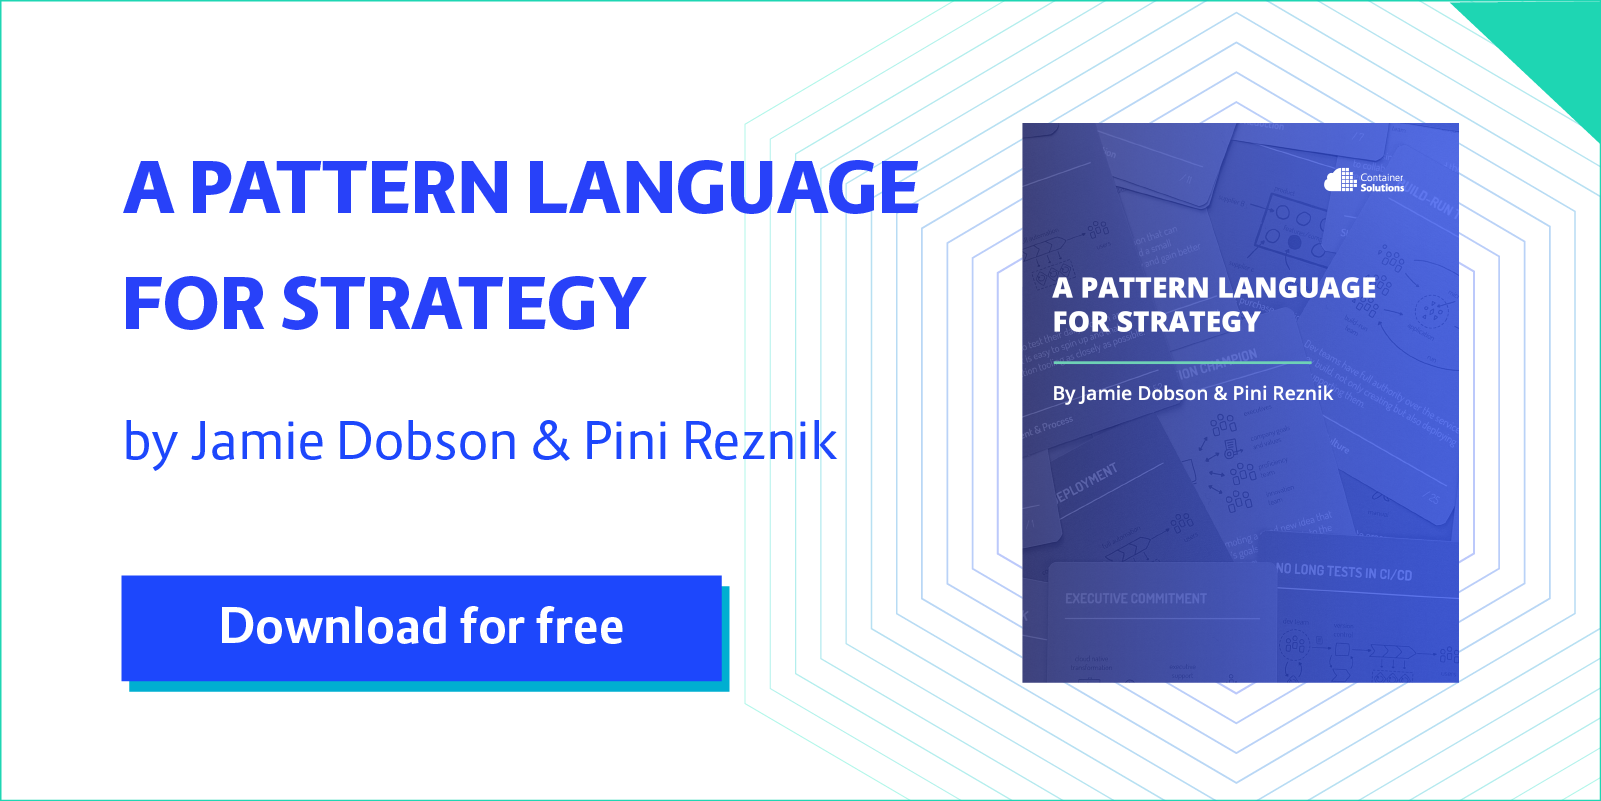 A pattern language for strategy PDF